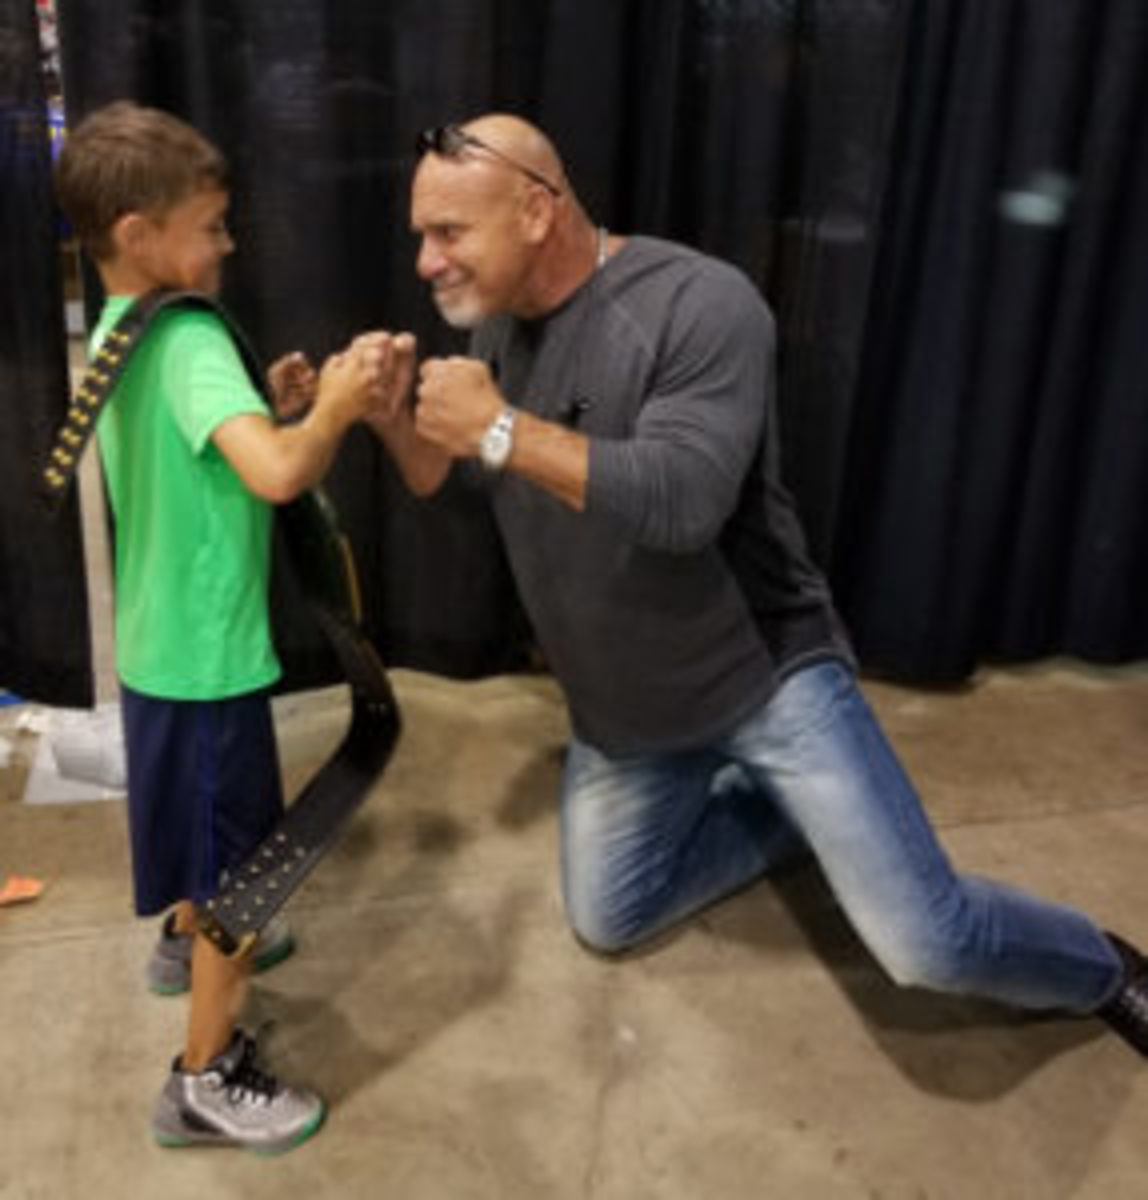 Bill Goldberg has some fun with a fan.